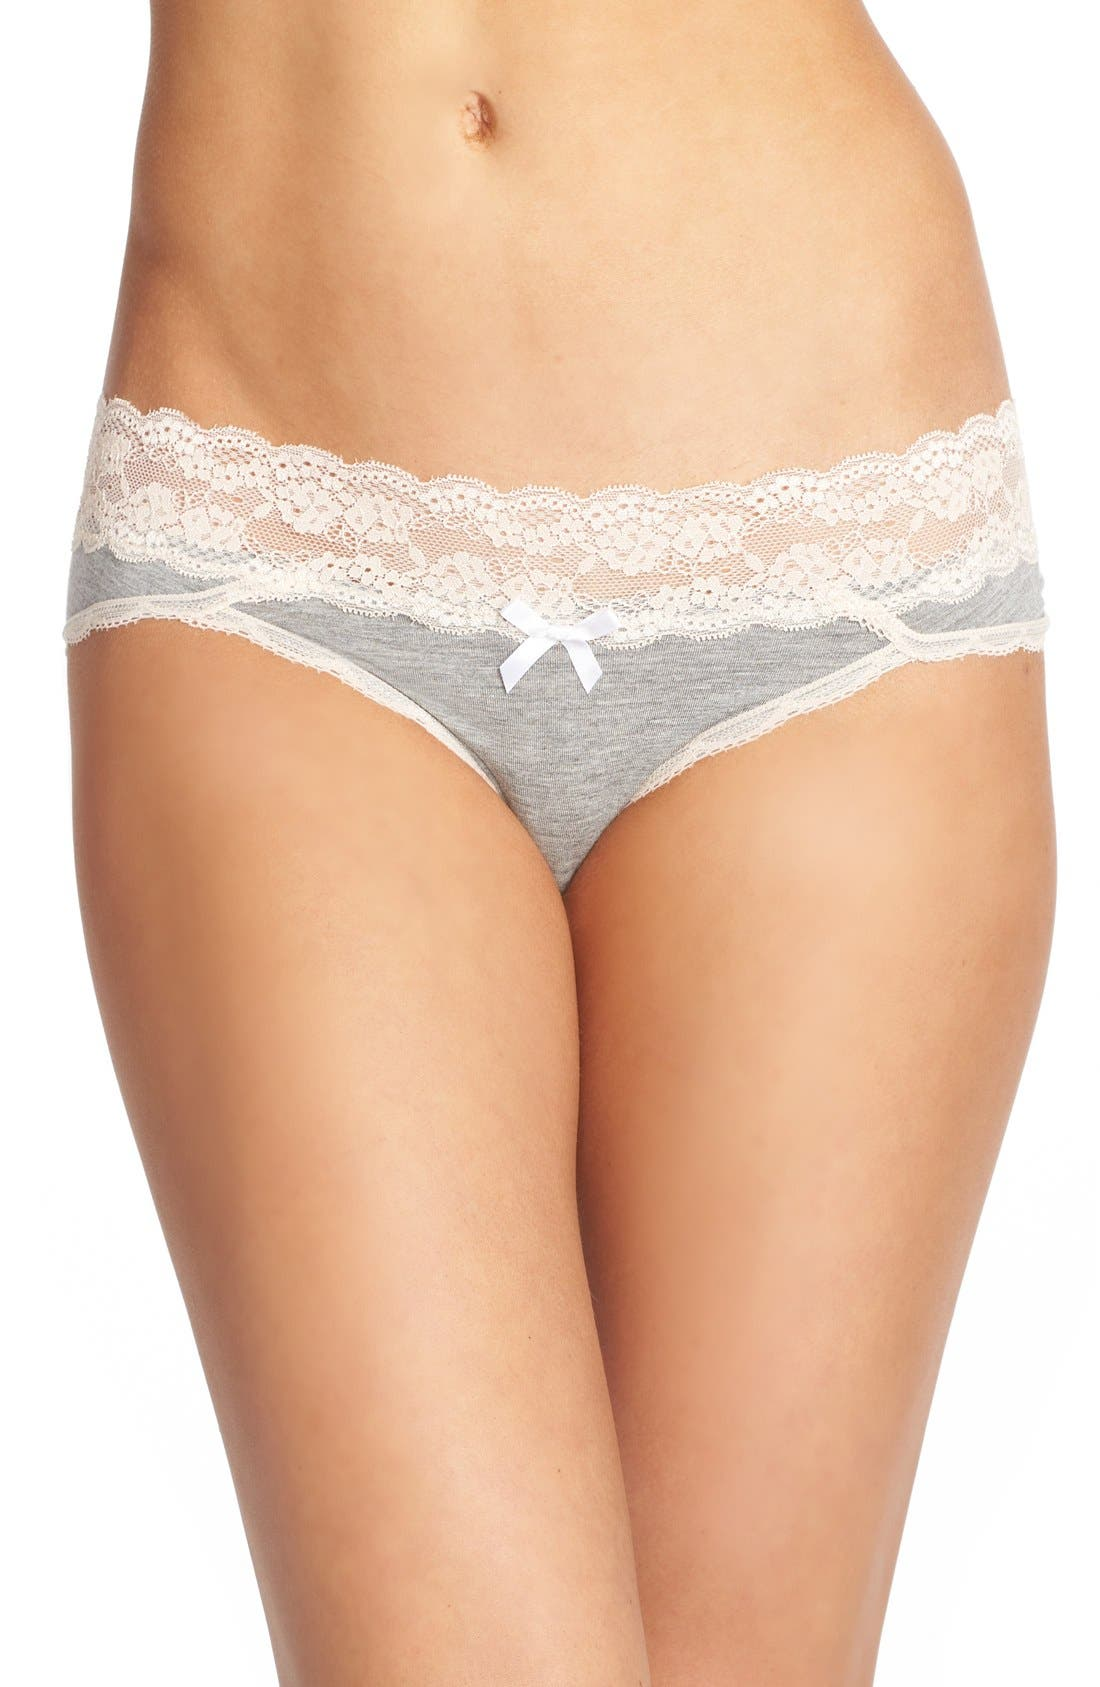 Ahna Hipster Panties,                         Main,                         color, HEATHER GREY/ SEASHELL